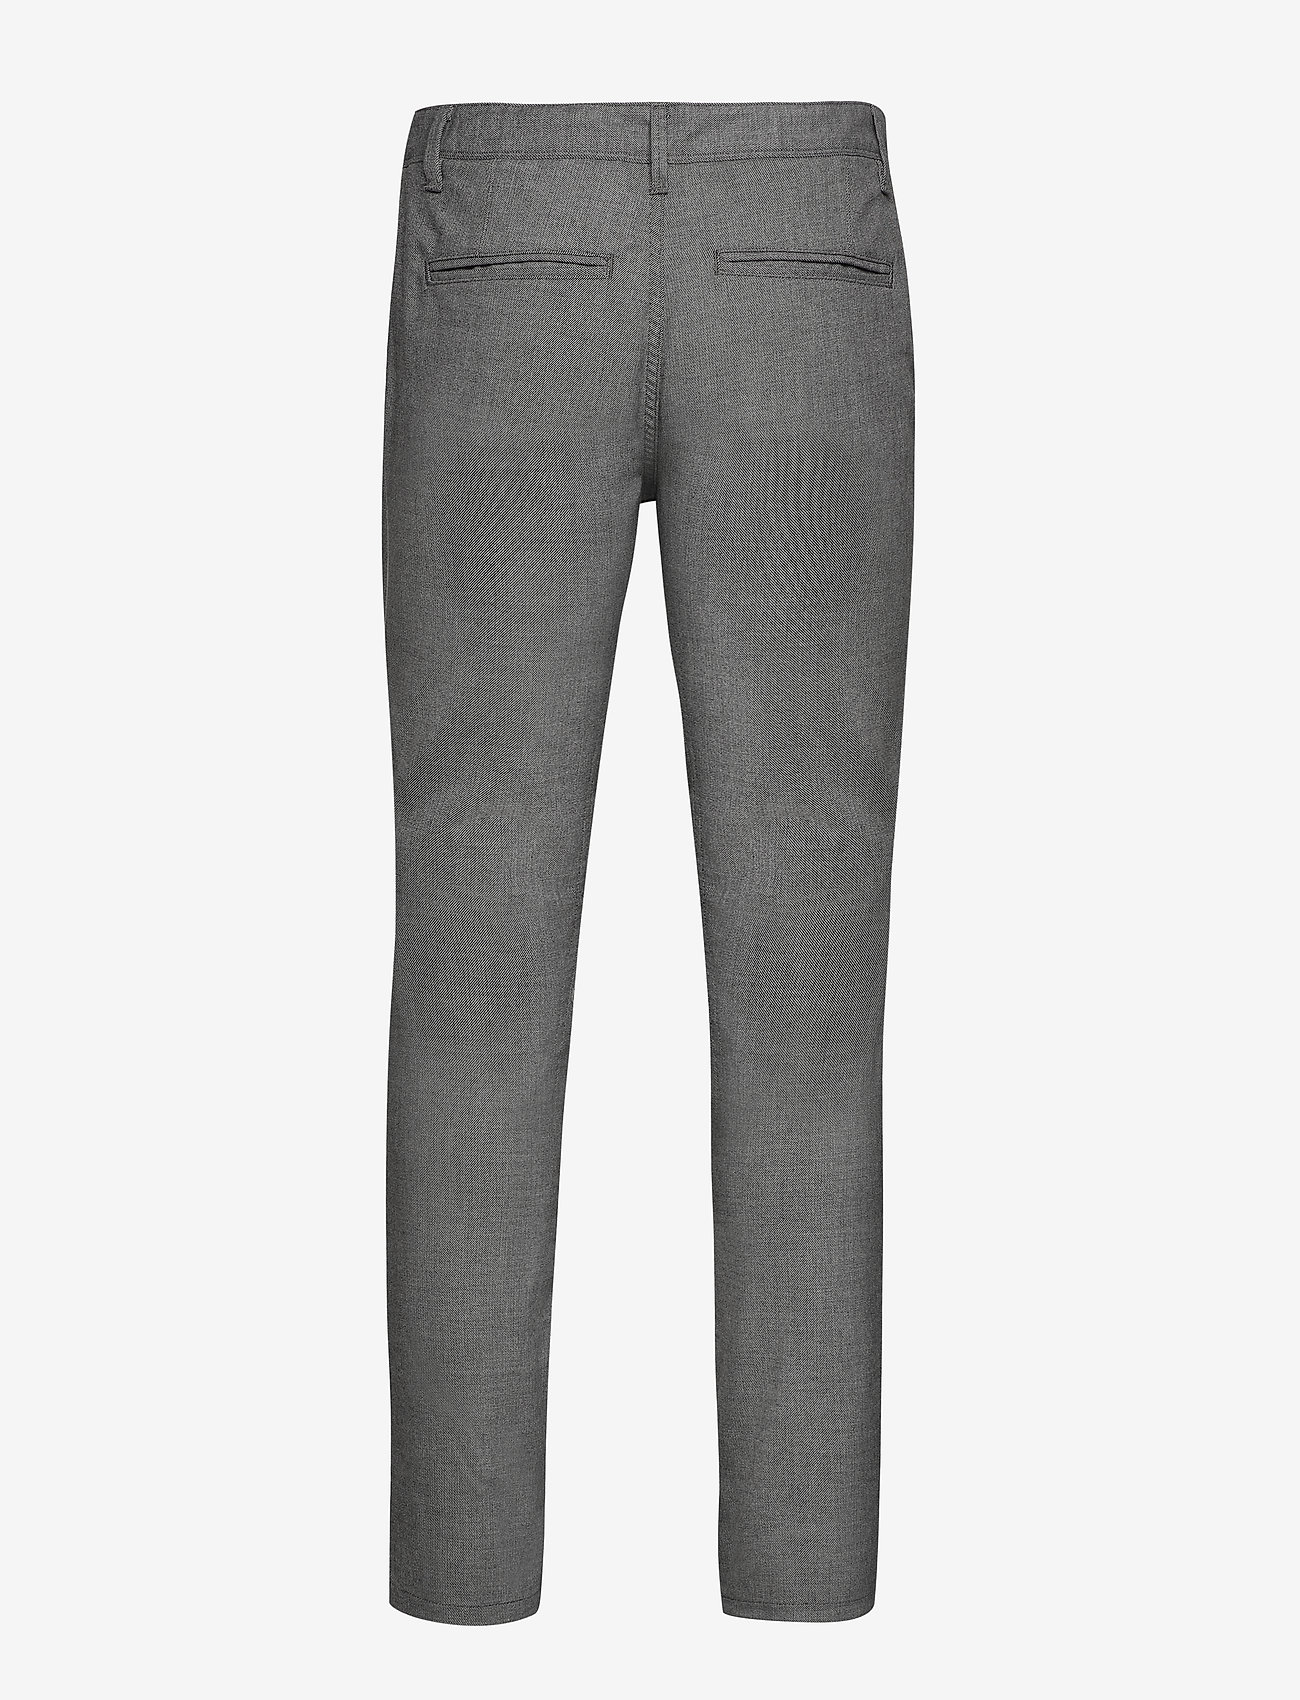 Selected Homme - SLHSLIM-STORM FLEX SMART PANTS W - pantalons habillés - grey